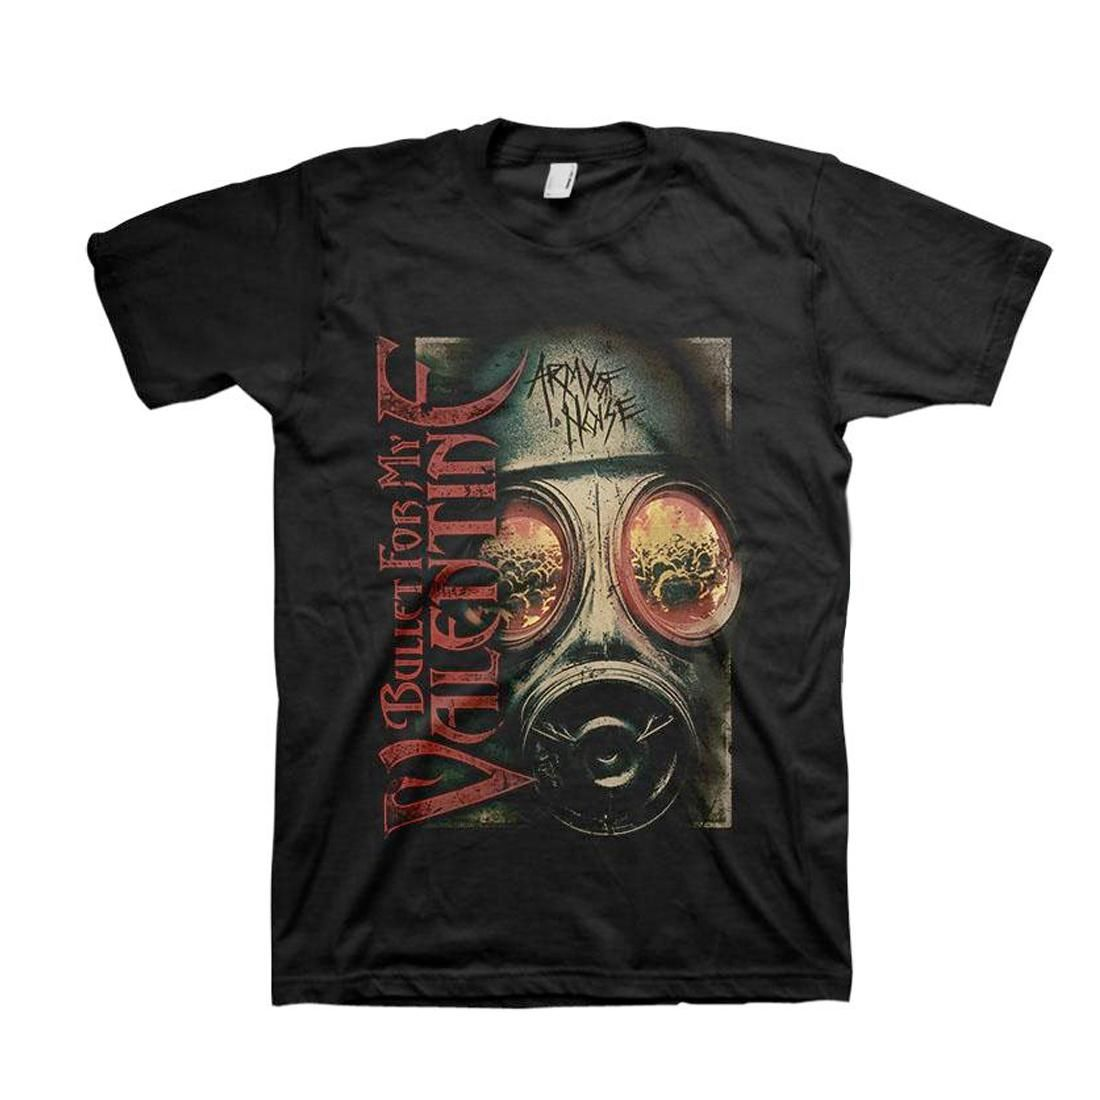 Bullet For My Valentine: Army of Noise T-Shirt